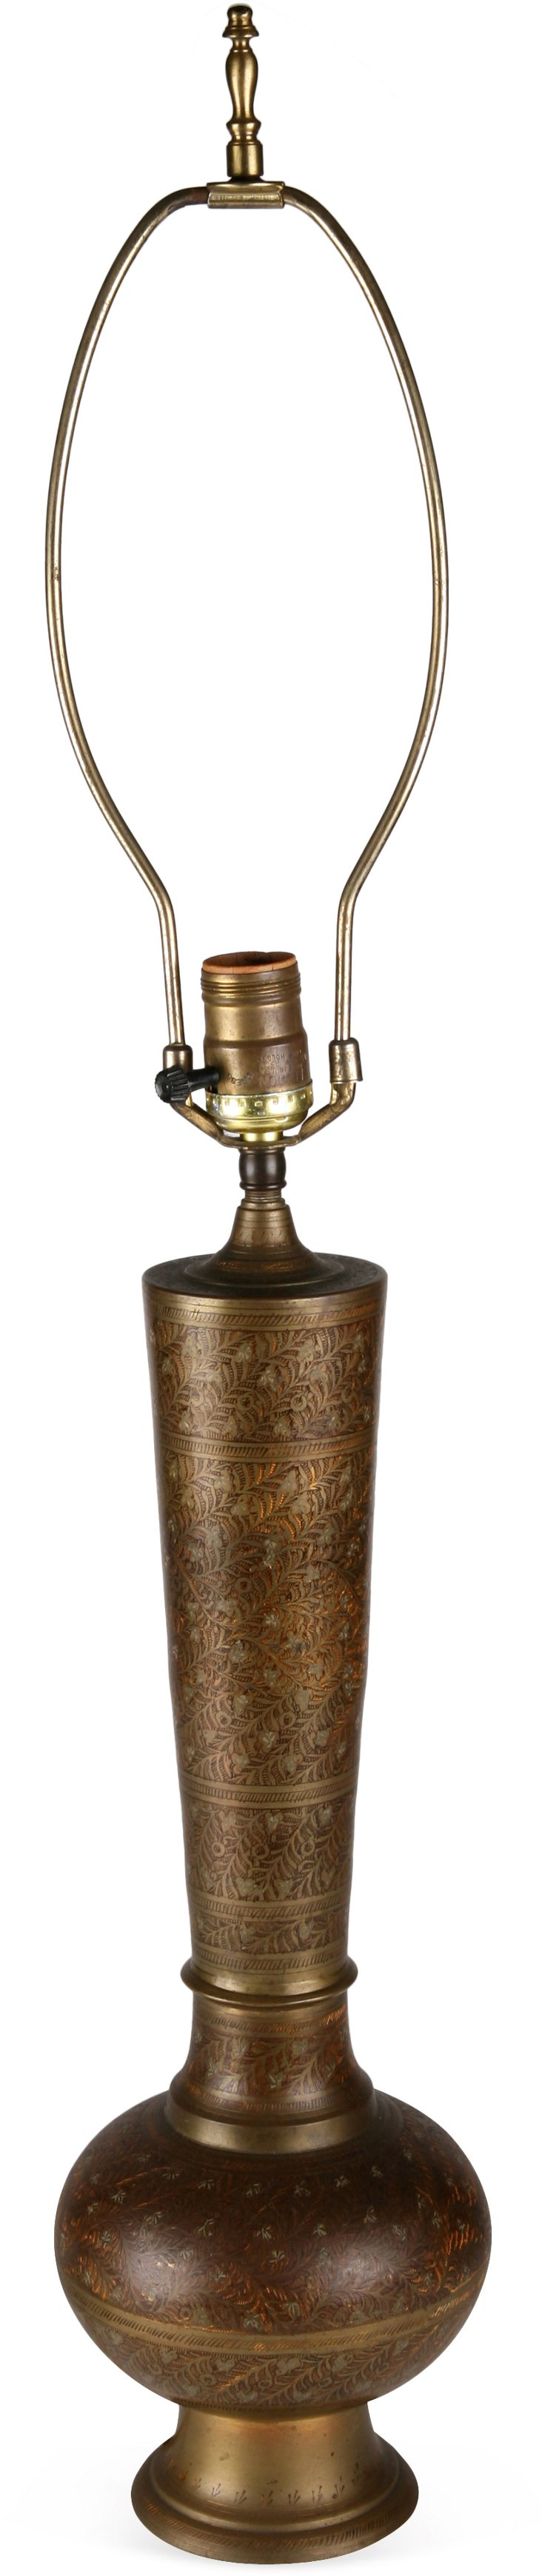 1950s Middle Eastern Lamp